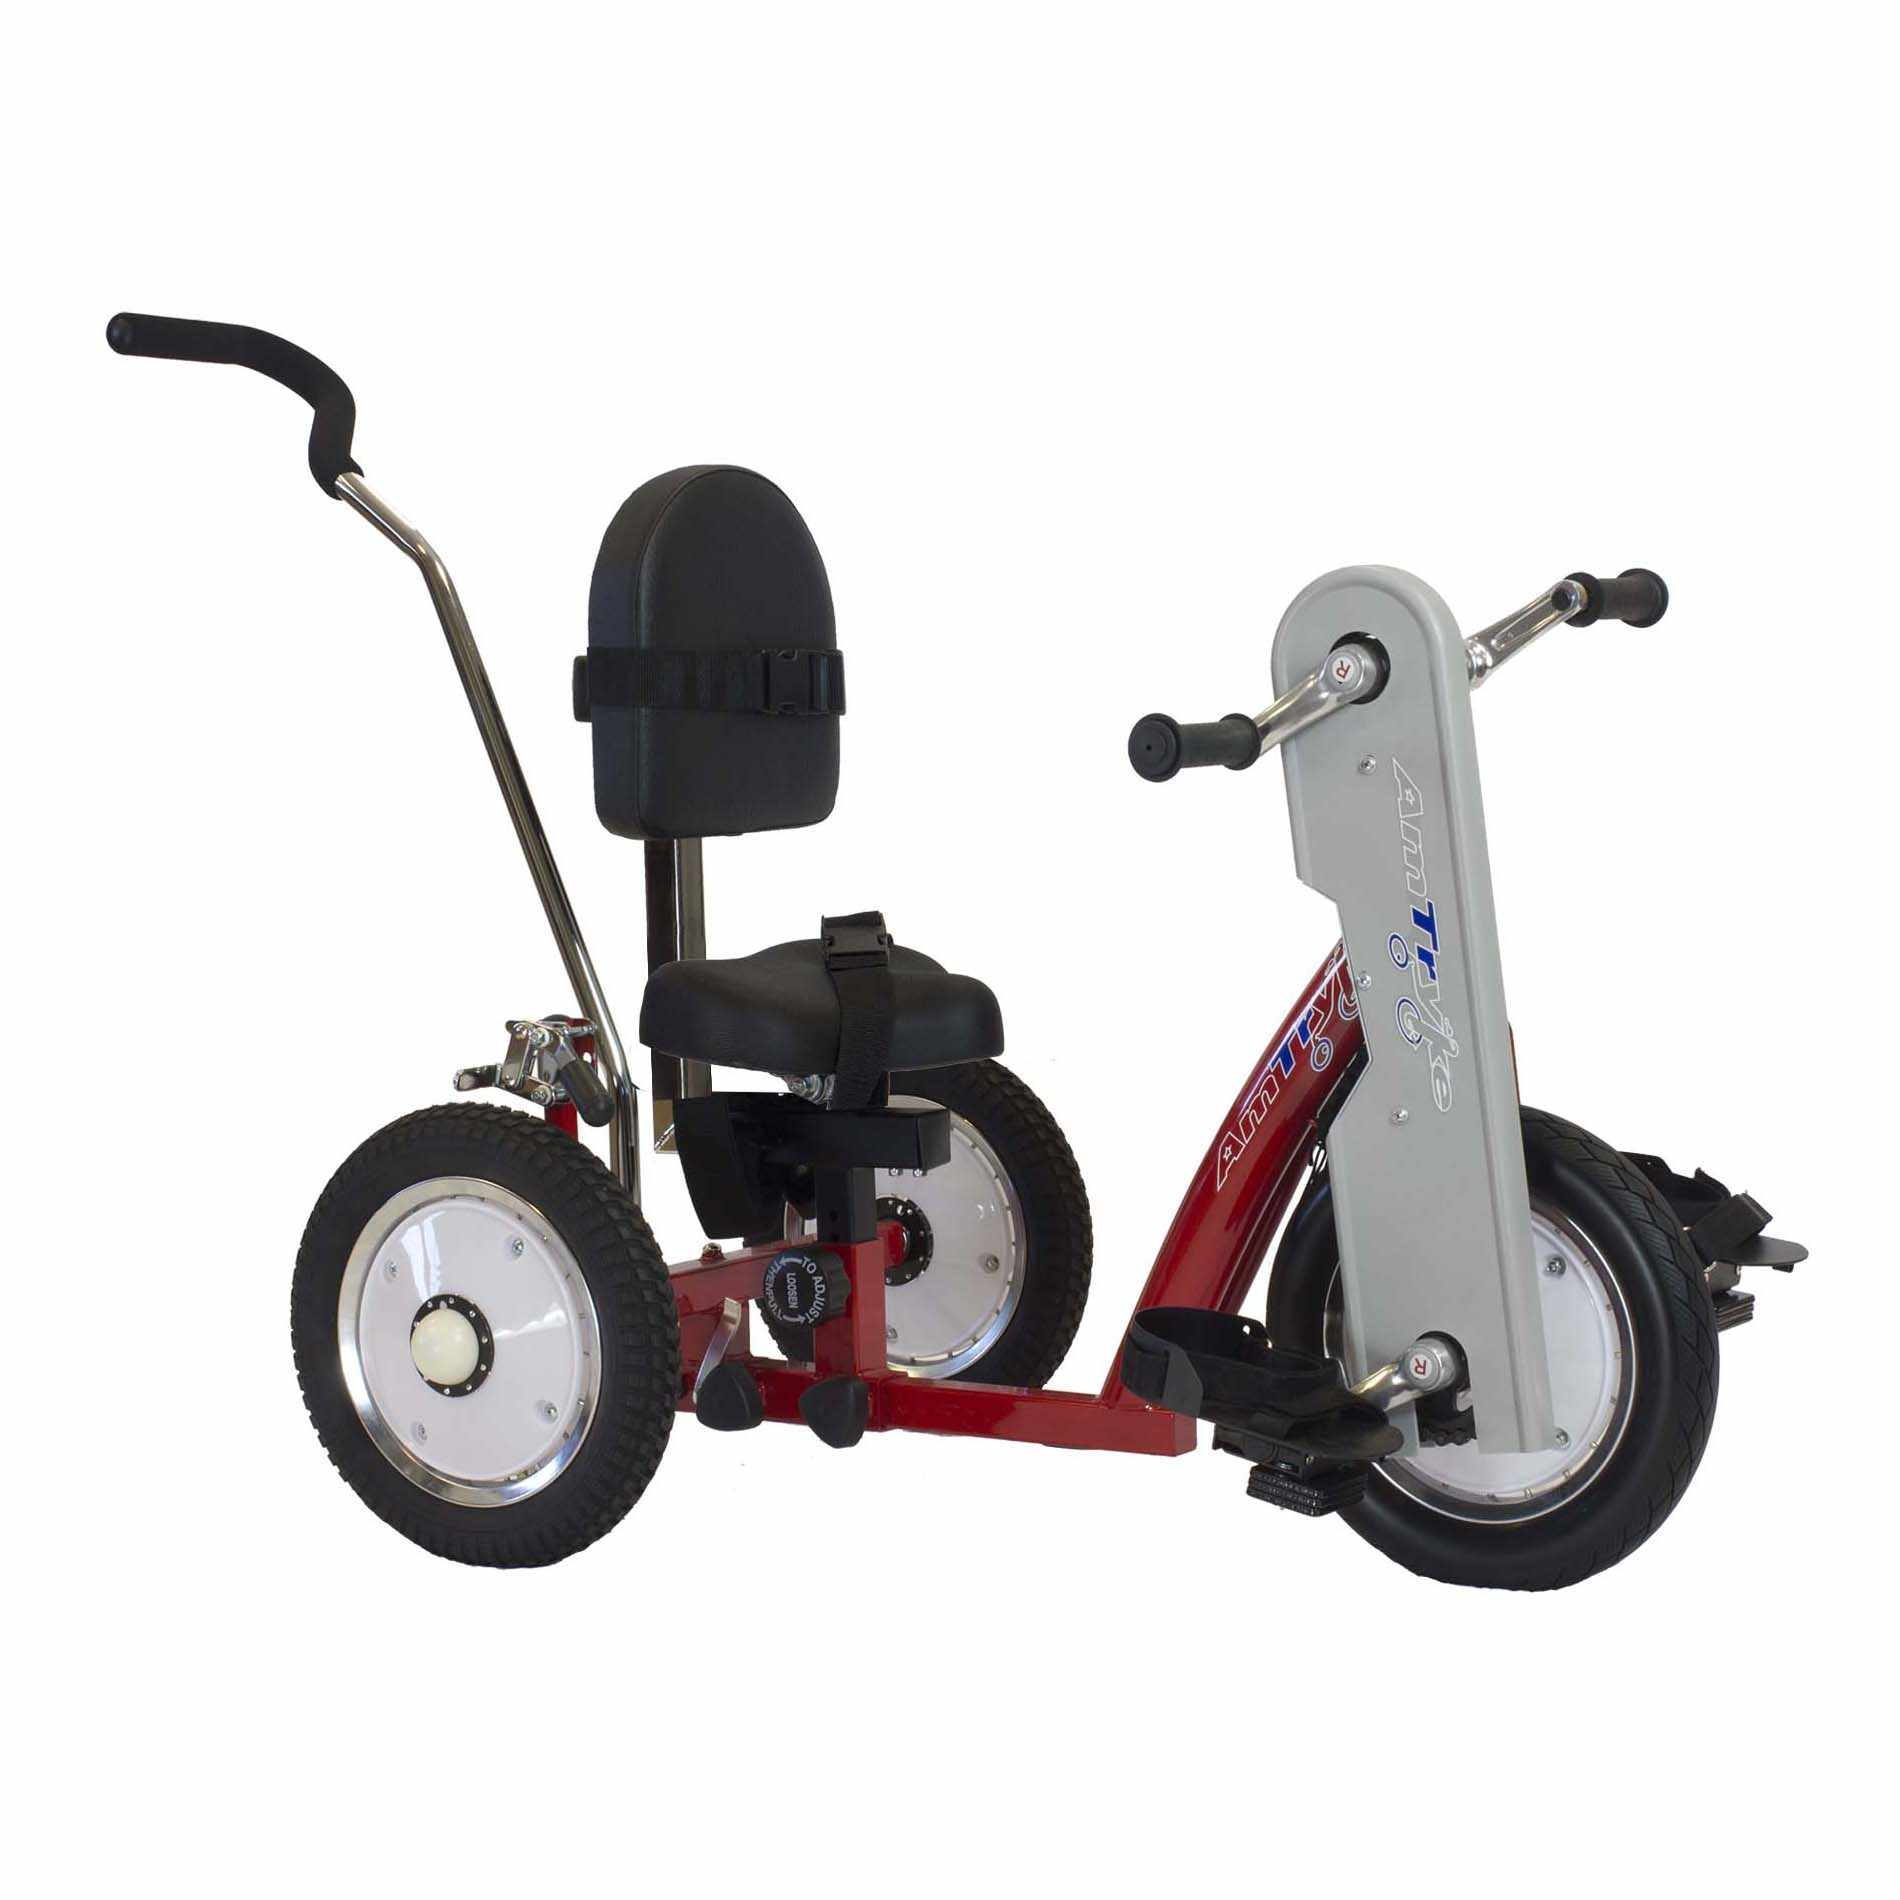 Amtryke AM-12S Small Tricycle With 1600 Seat | Amtryke Tricycles